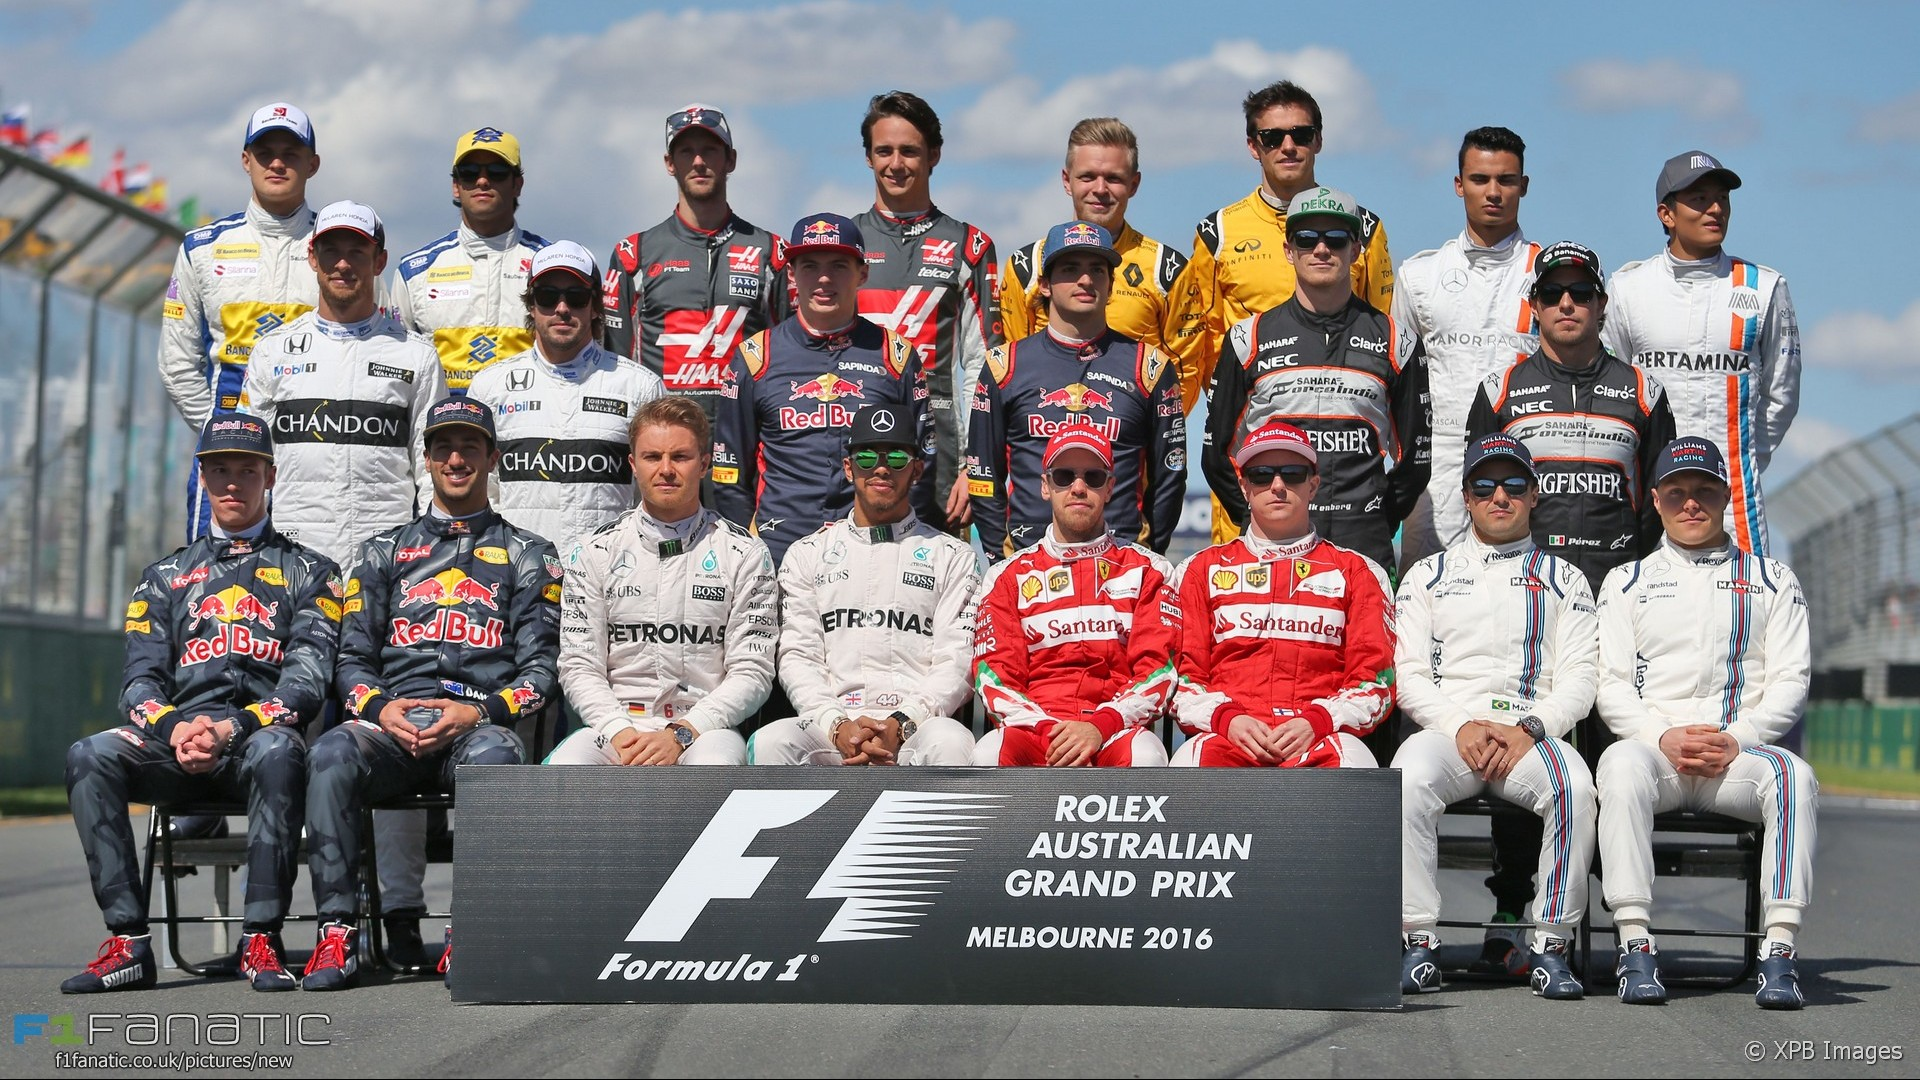 Drivers start-of-season photograph, Albert Park, Melbourne, 2016